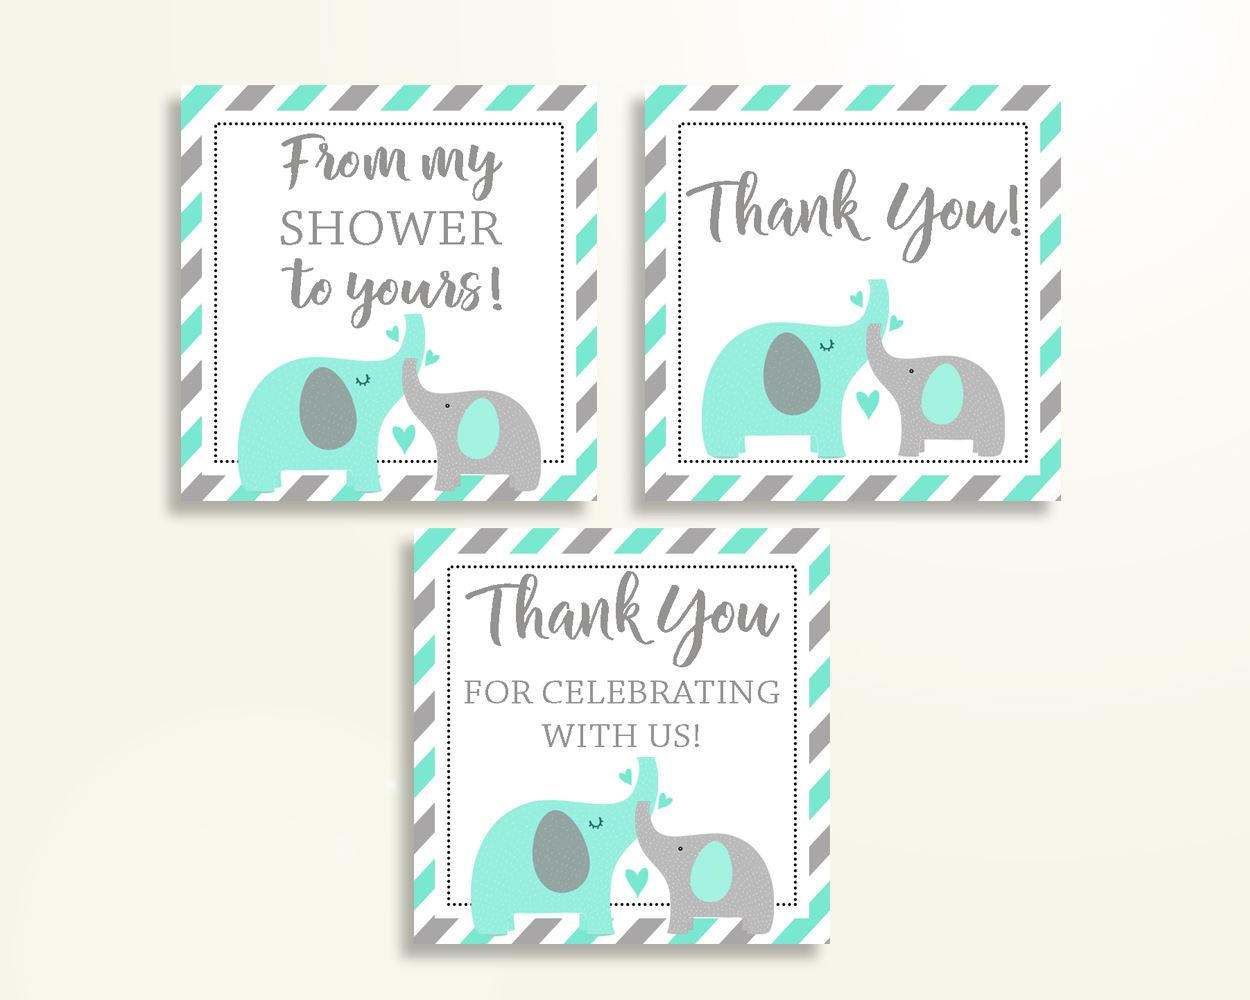 Thank You Tags Baby Shower Thank You Tags Turquoise Baby Shower Thank You Tags Baby Shower Elephant Thank You Tags Green Gray prints 5DMNH - Digital Product